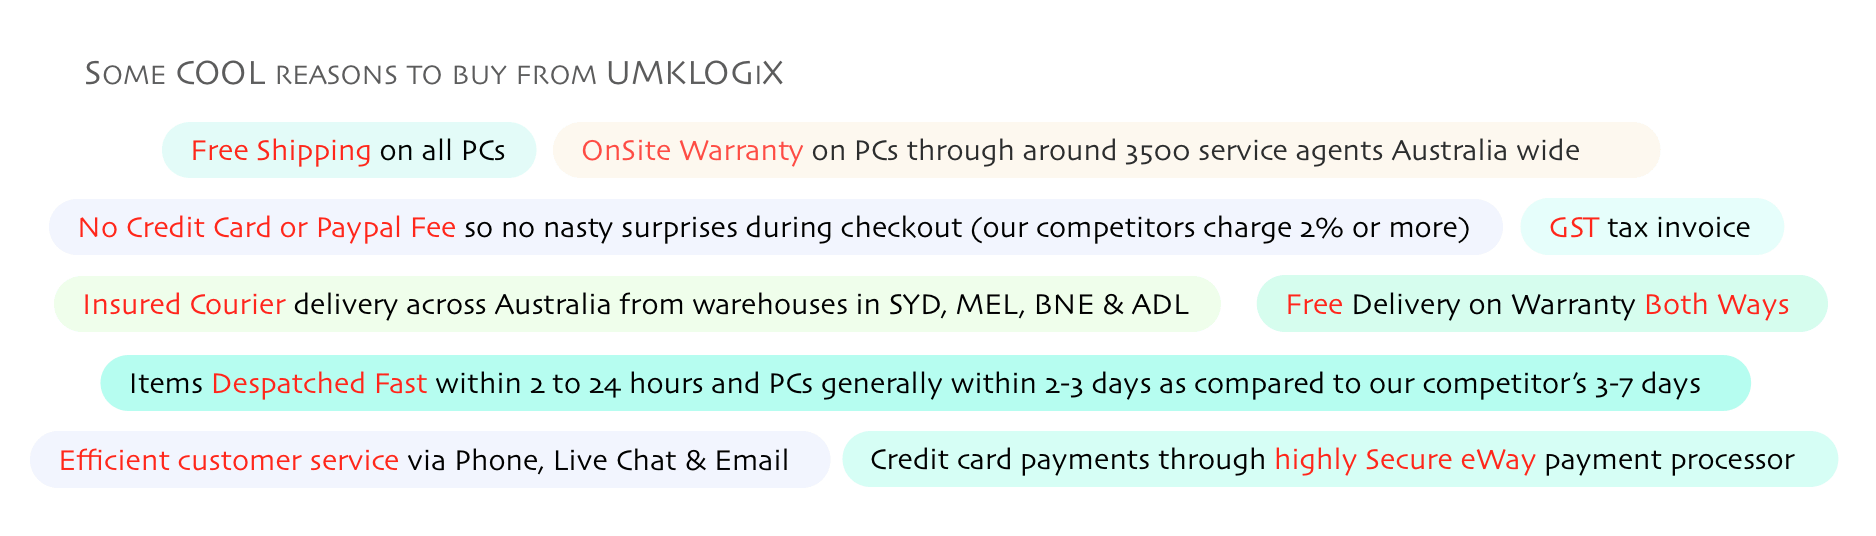 Some COOL reasons to buy from UMKLOGiX